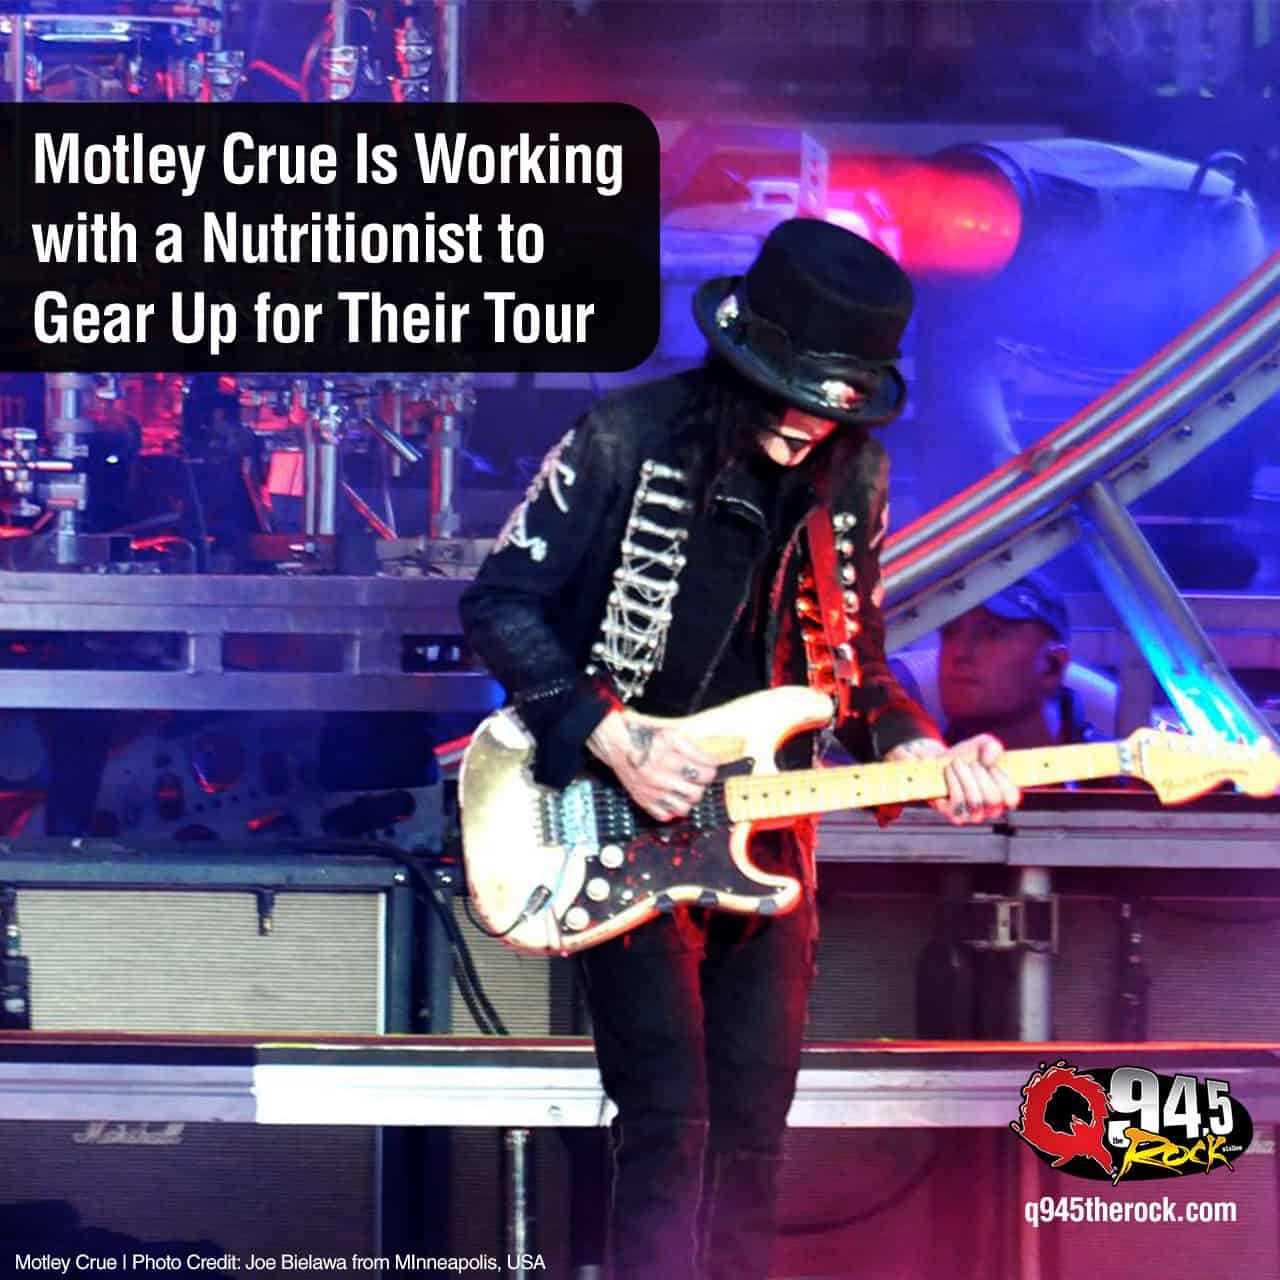 Motley Crue Is Working with a Nutritionist to Gear Up for Their Tour -  KFRQ Q94.5